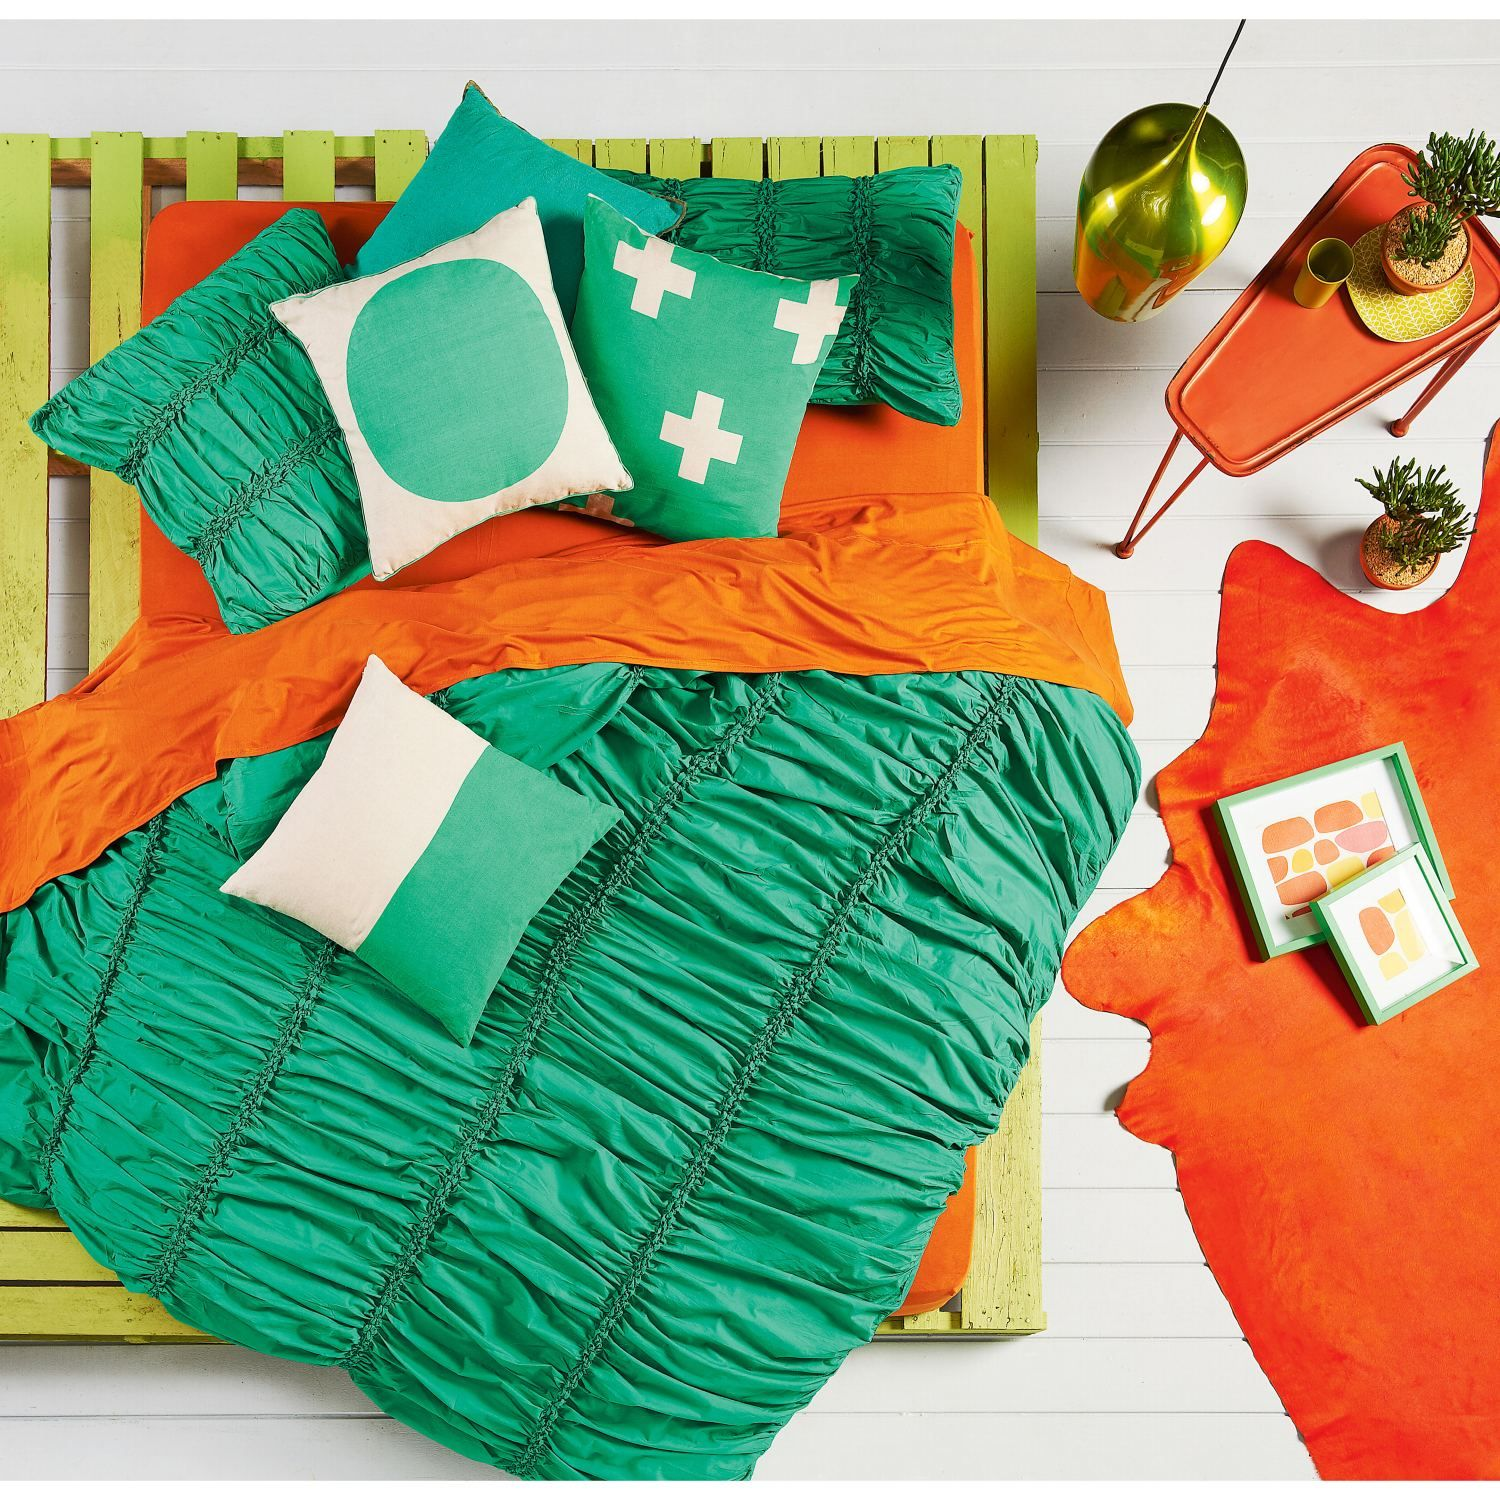 Emerald Gathered Quilt Cover | Domayne Online Store | Pallet ... : gathered quilt - Adamdwight.com